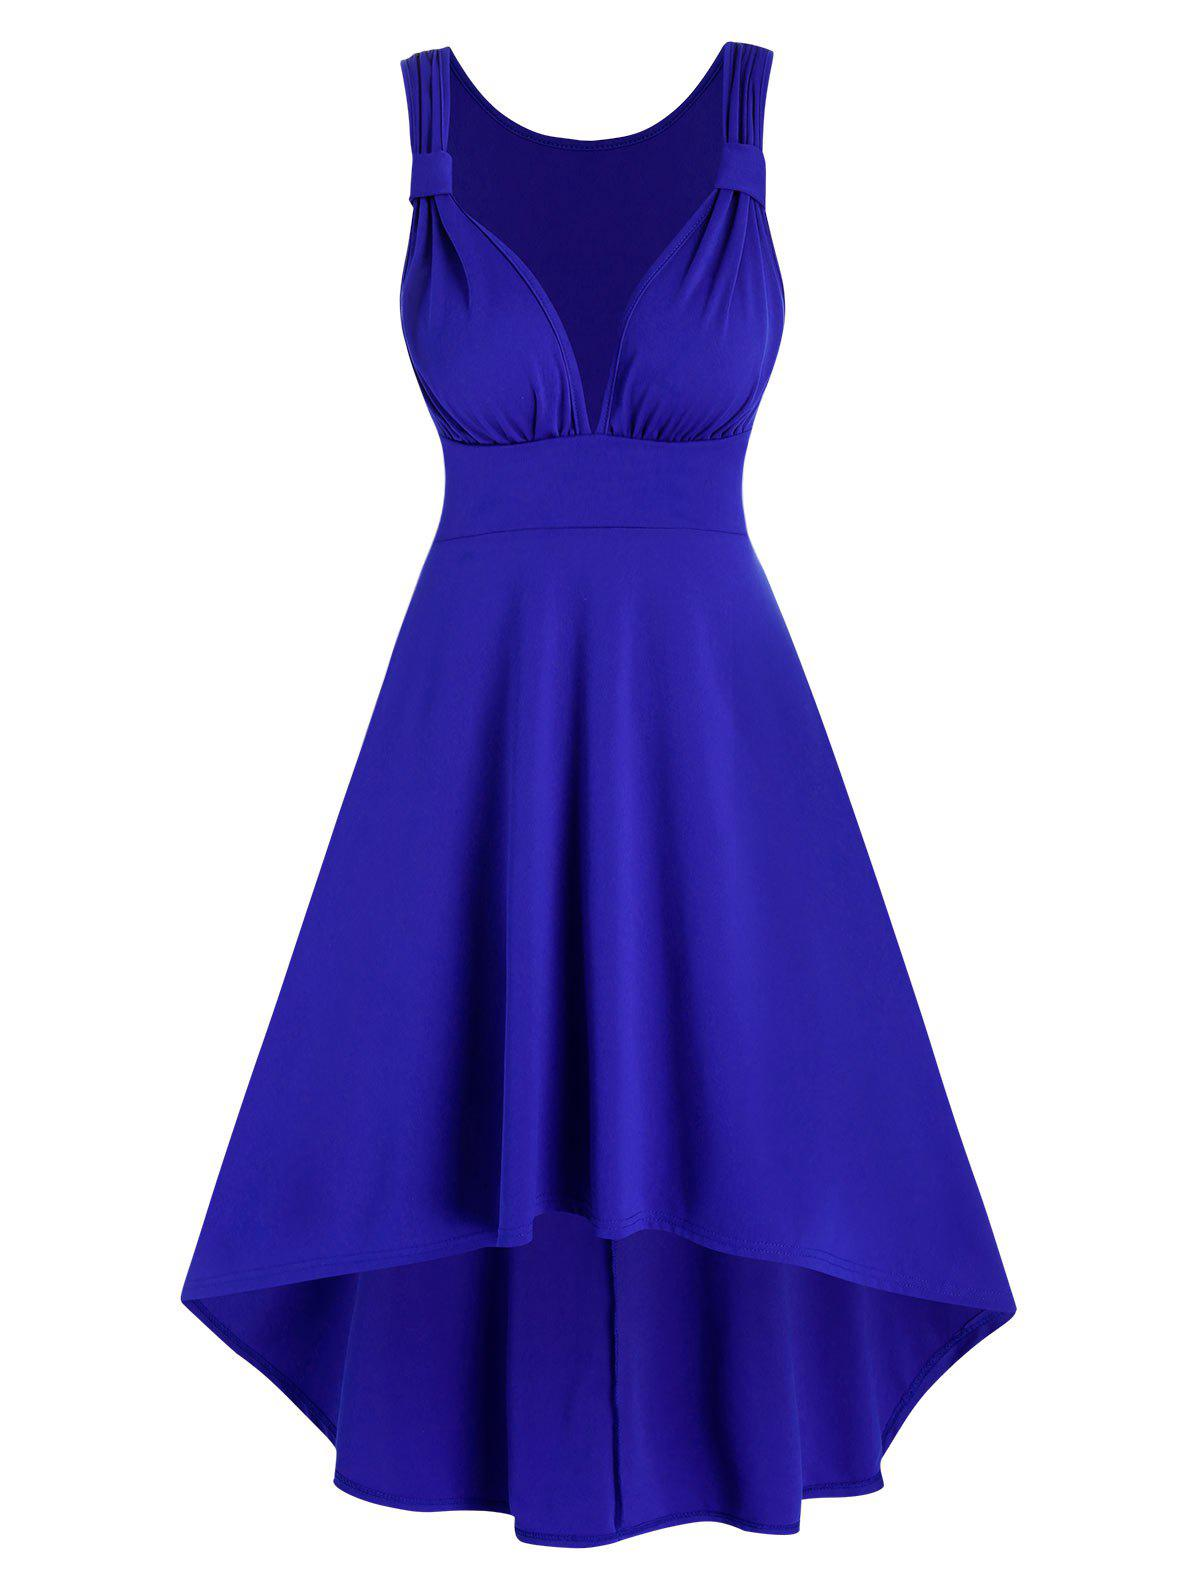 Shop Ruched Sleeveless High Low Prom Dress